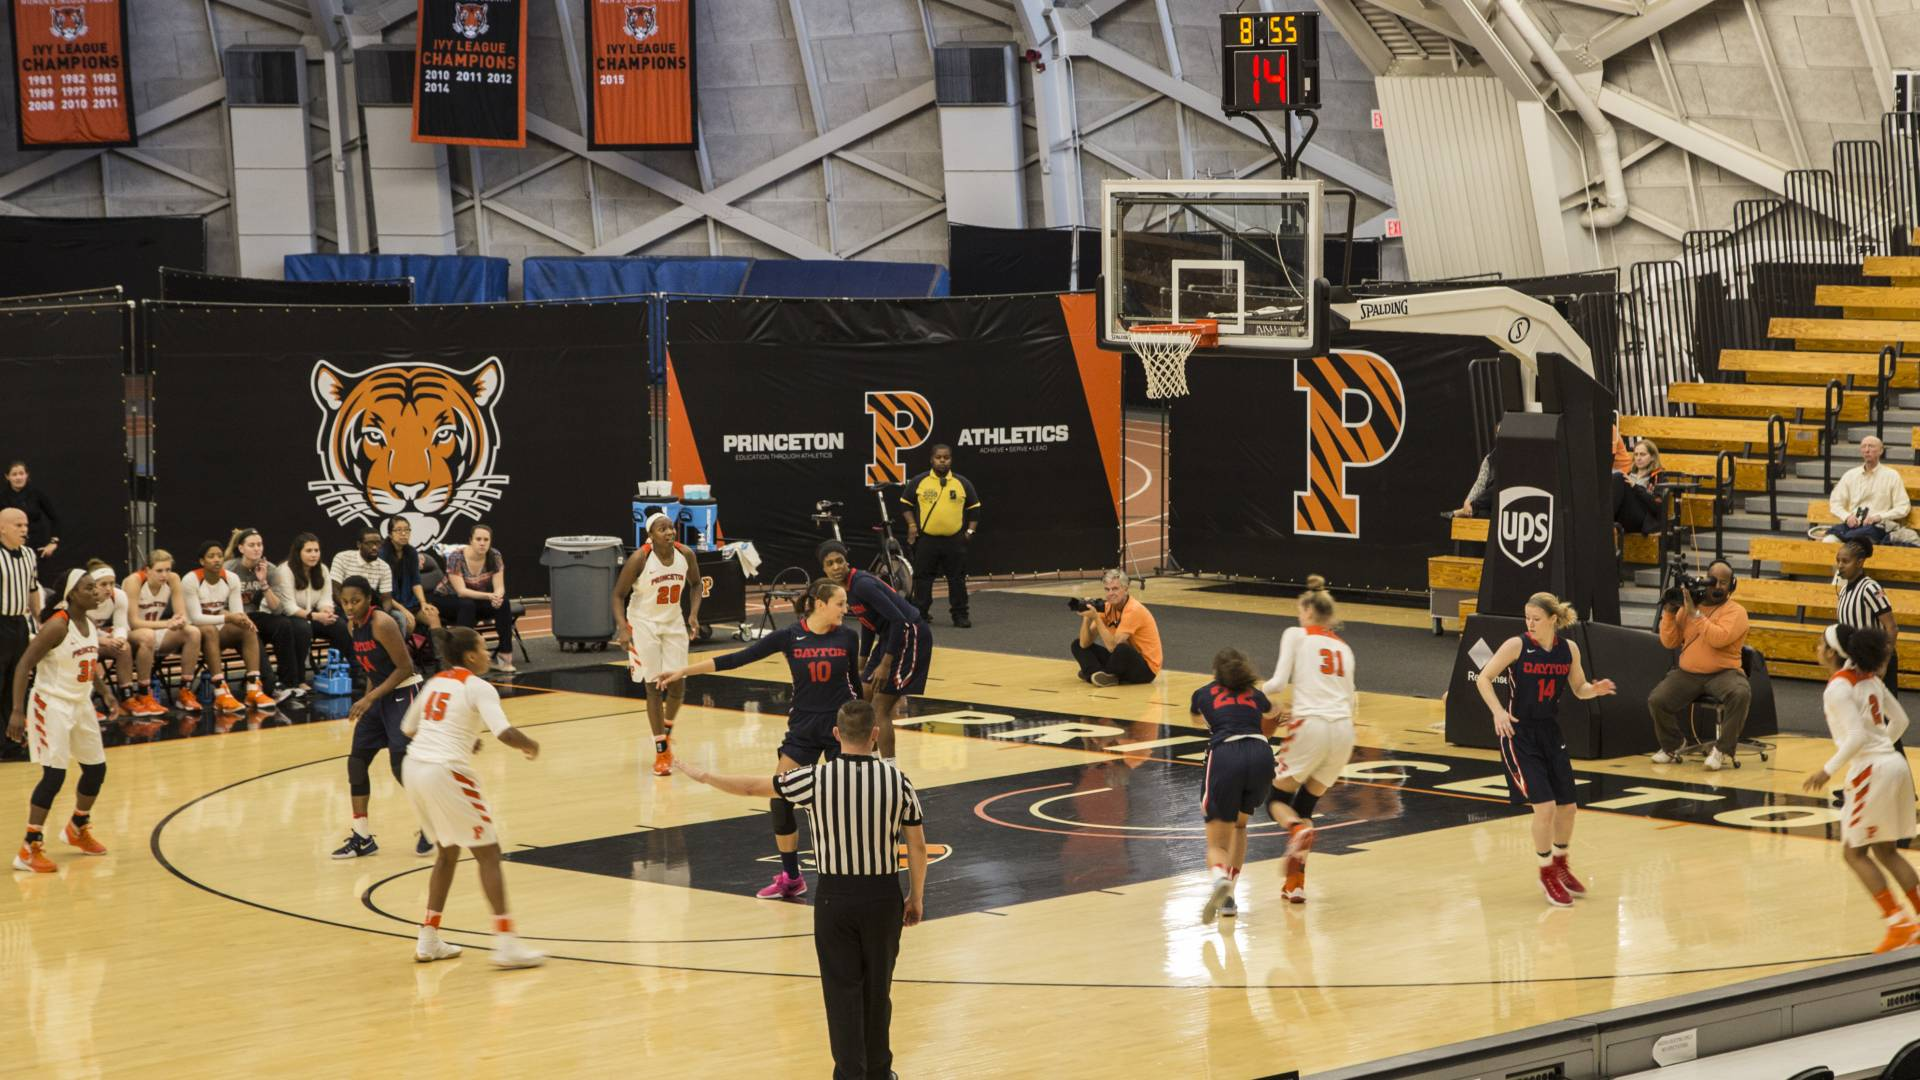 Princeton's Women's Basketball team